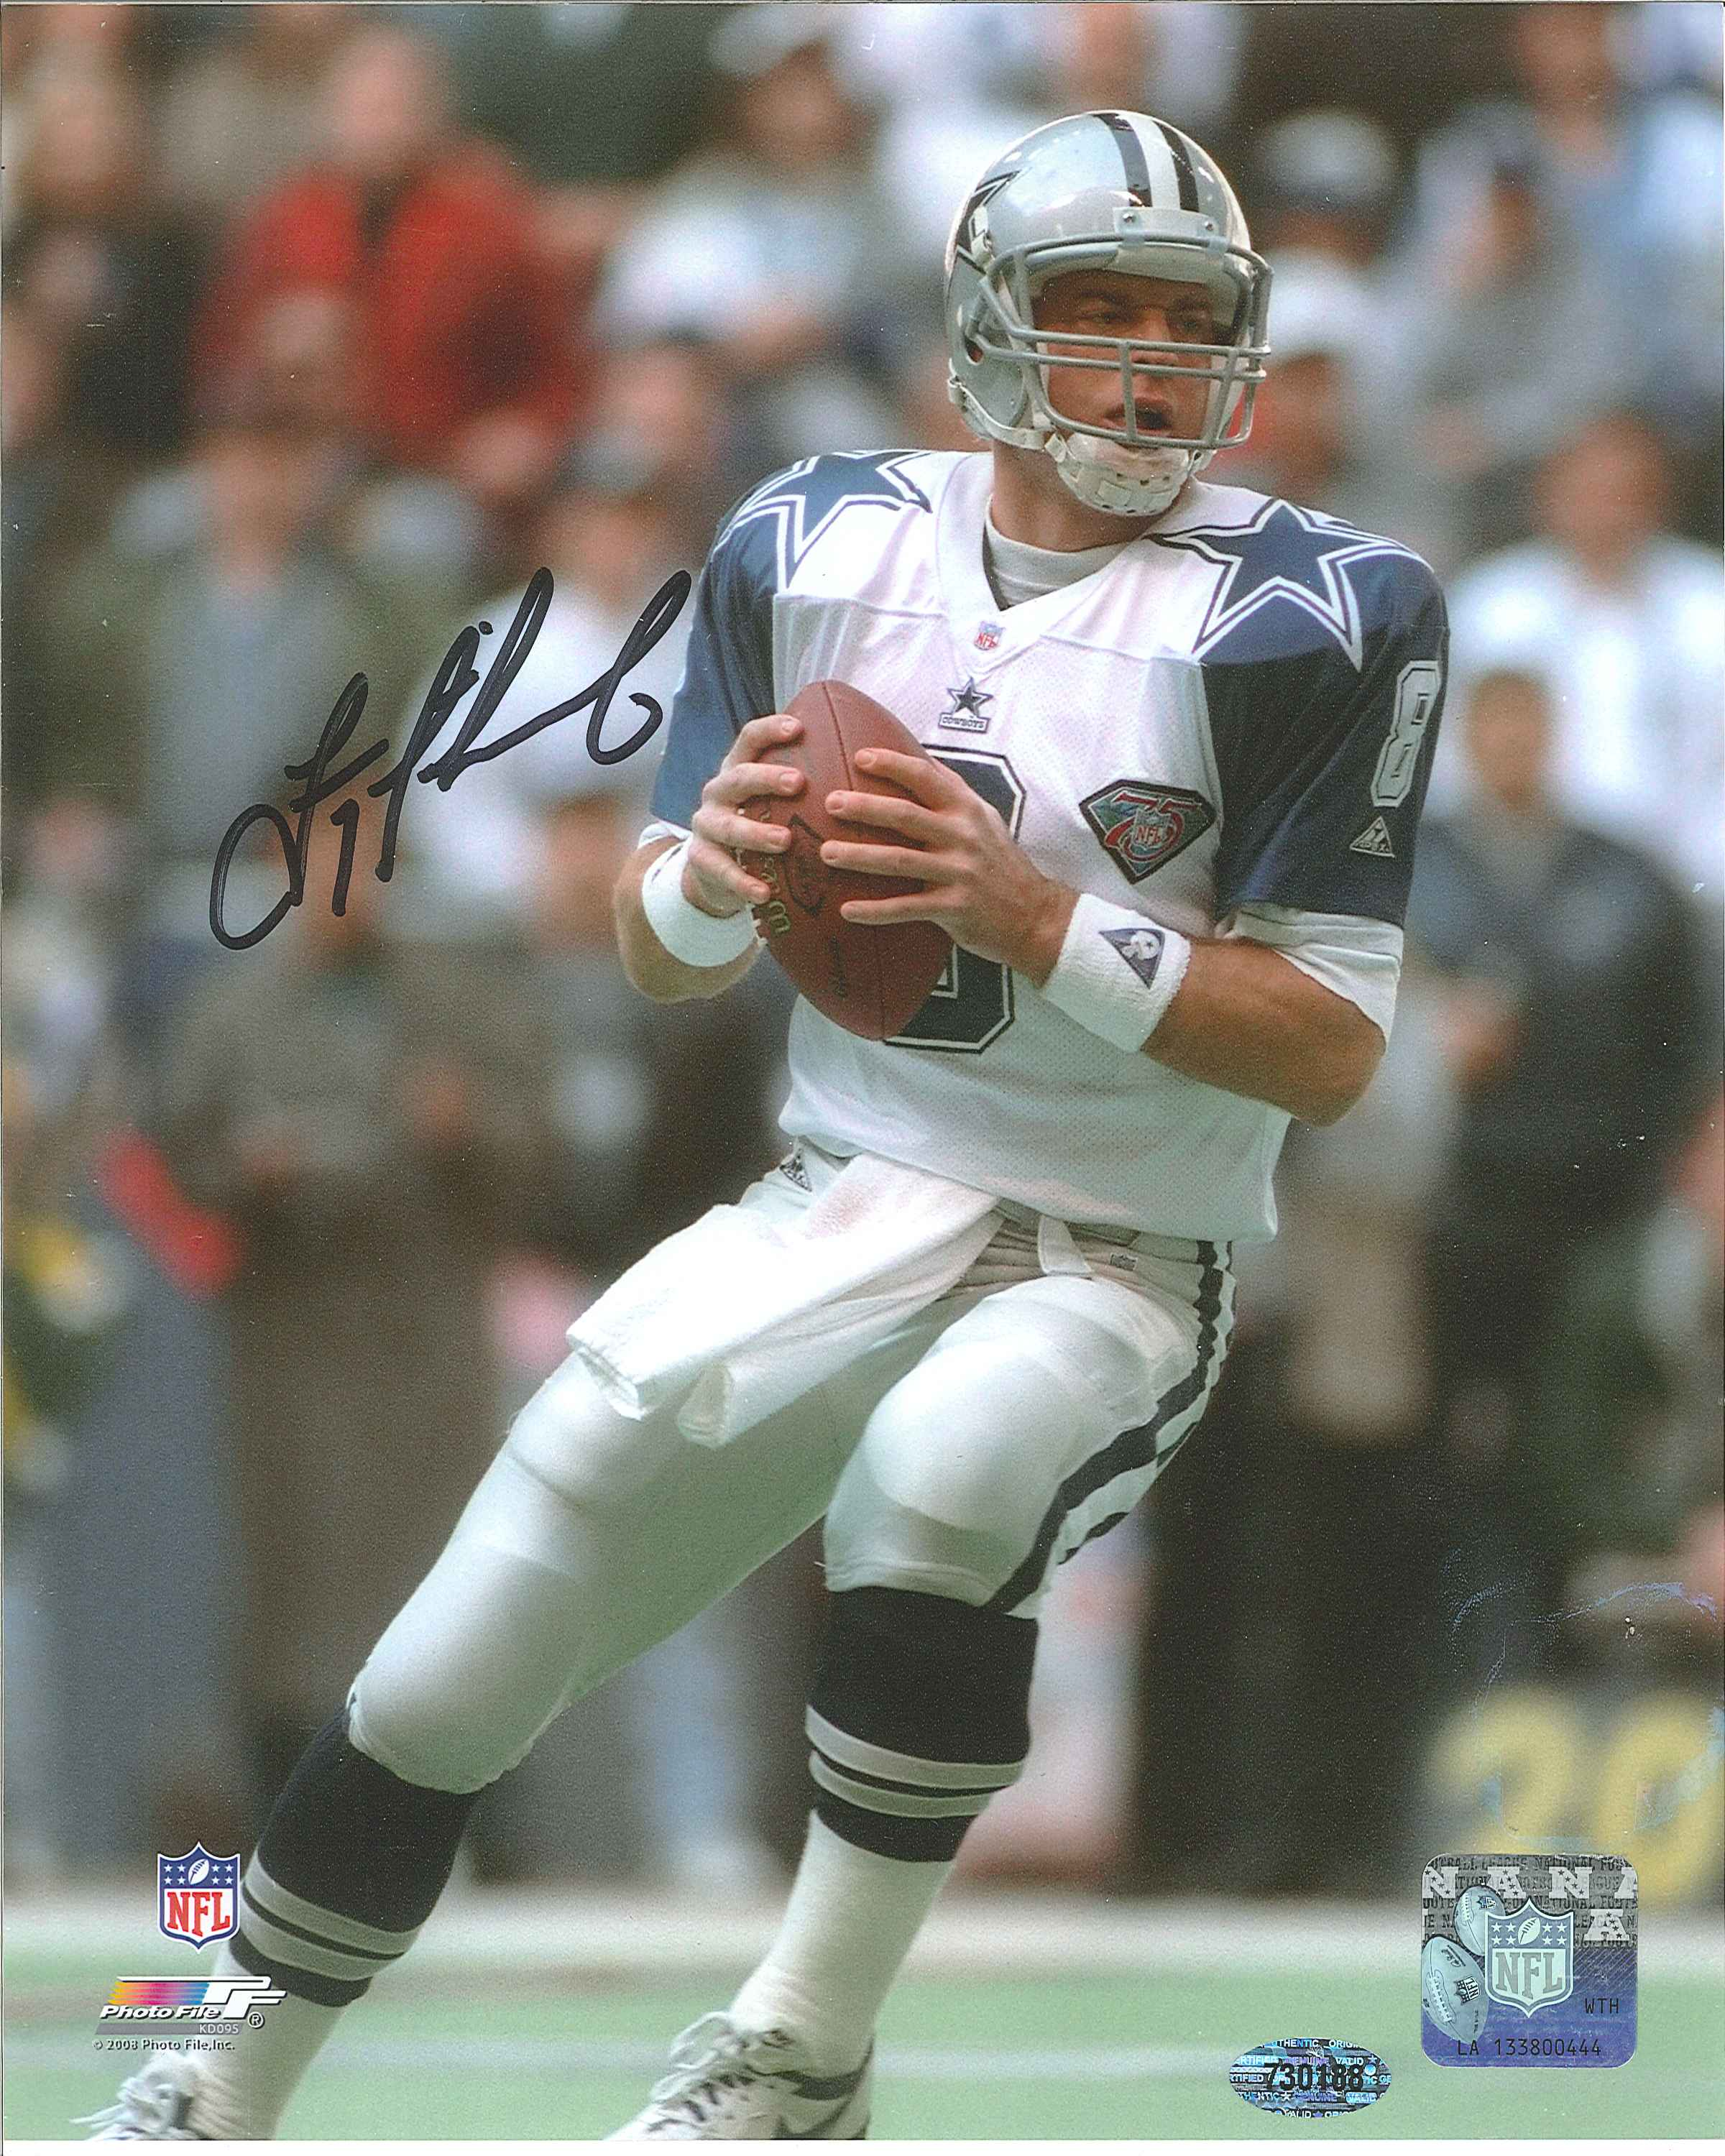 ... Troy Aikman Autographed Dallas Cowboys 8 x 10 Photo.  West Coast Authentic NFL Cowboys Troy Aikman Autographed Photo(2) 62f975ed3